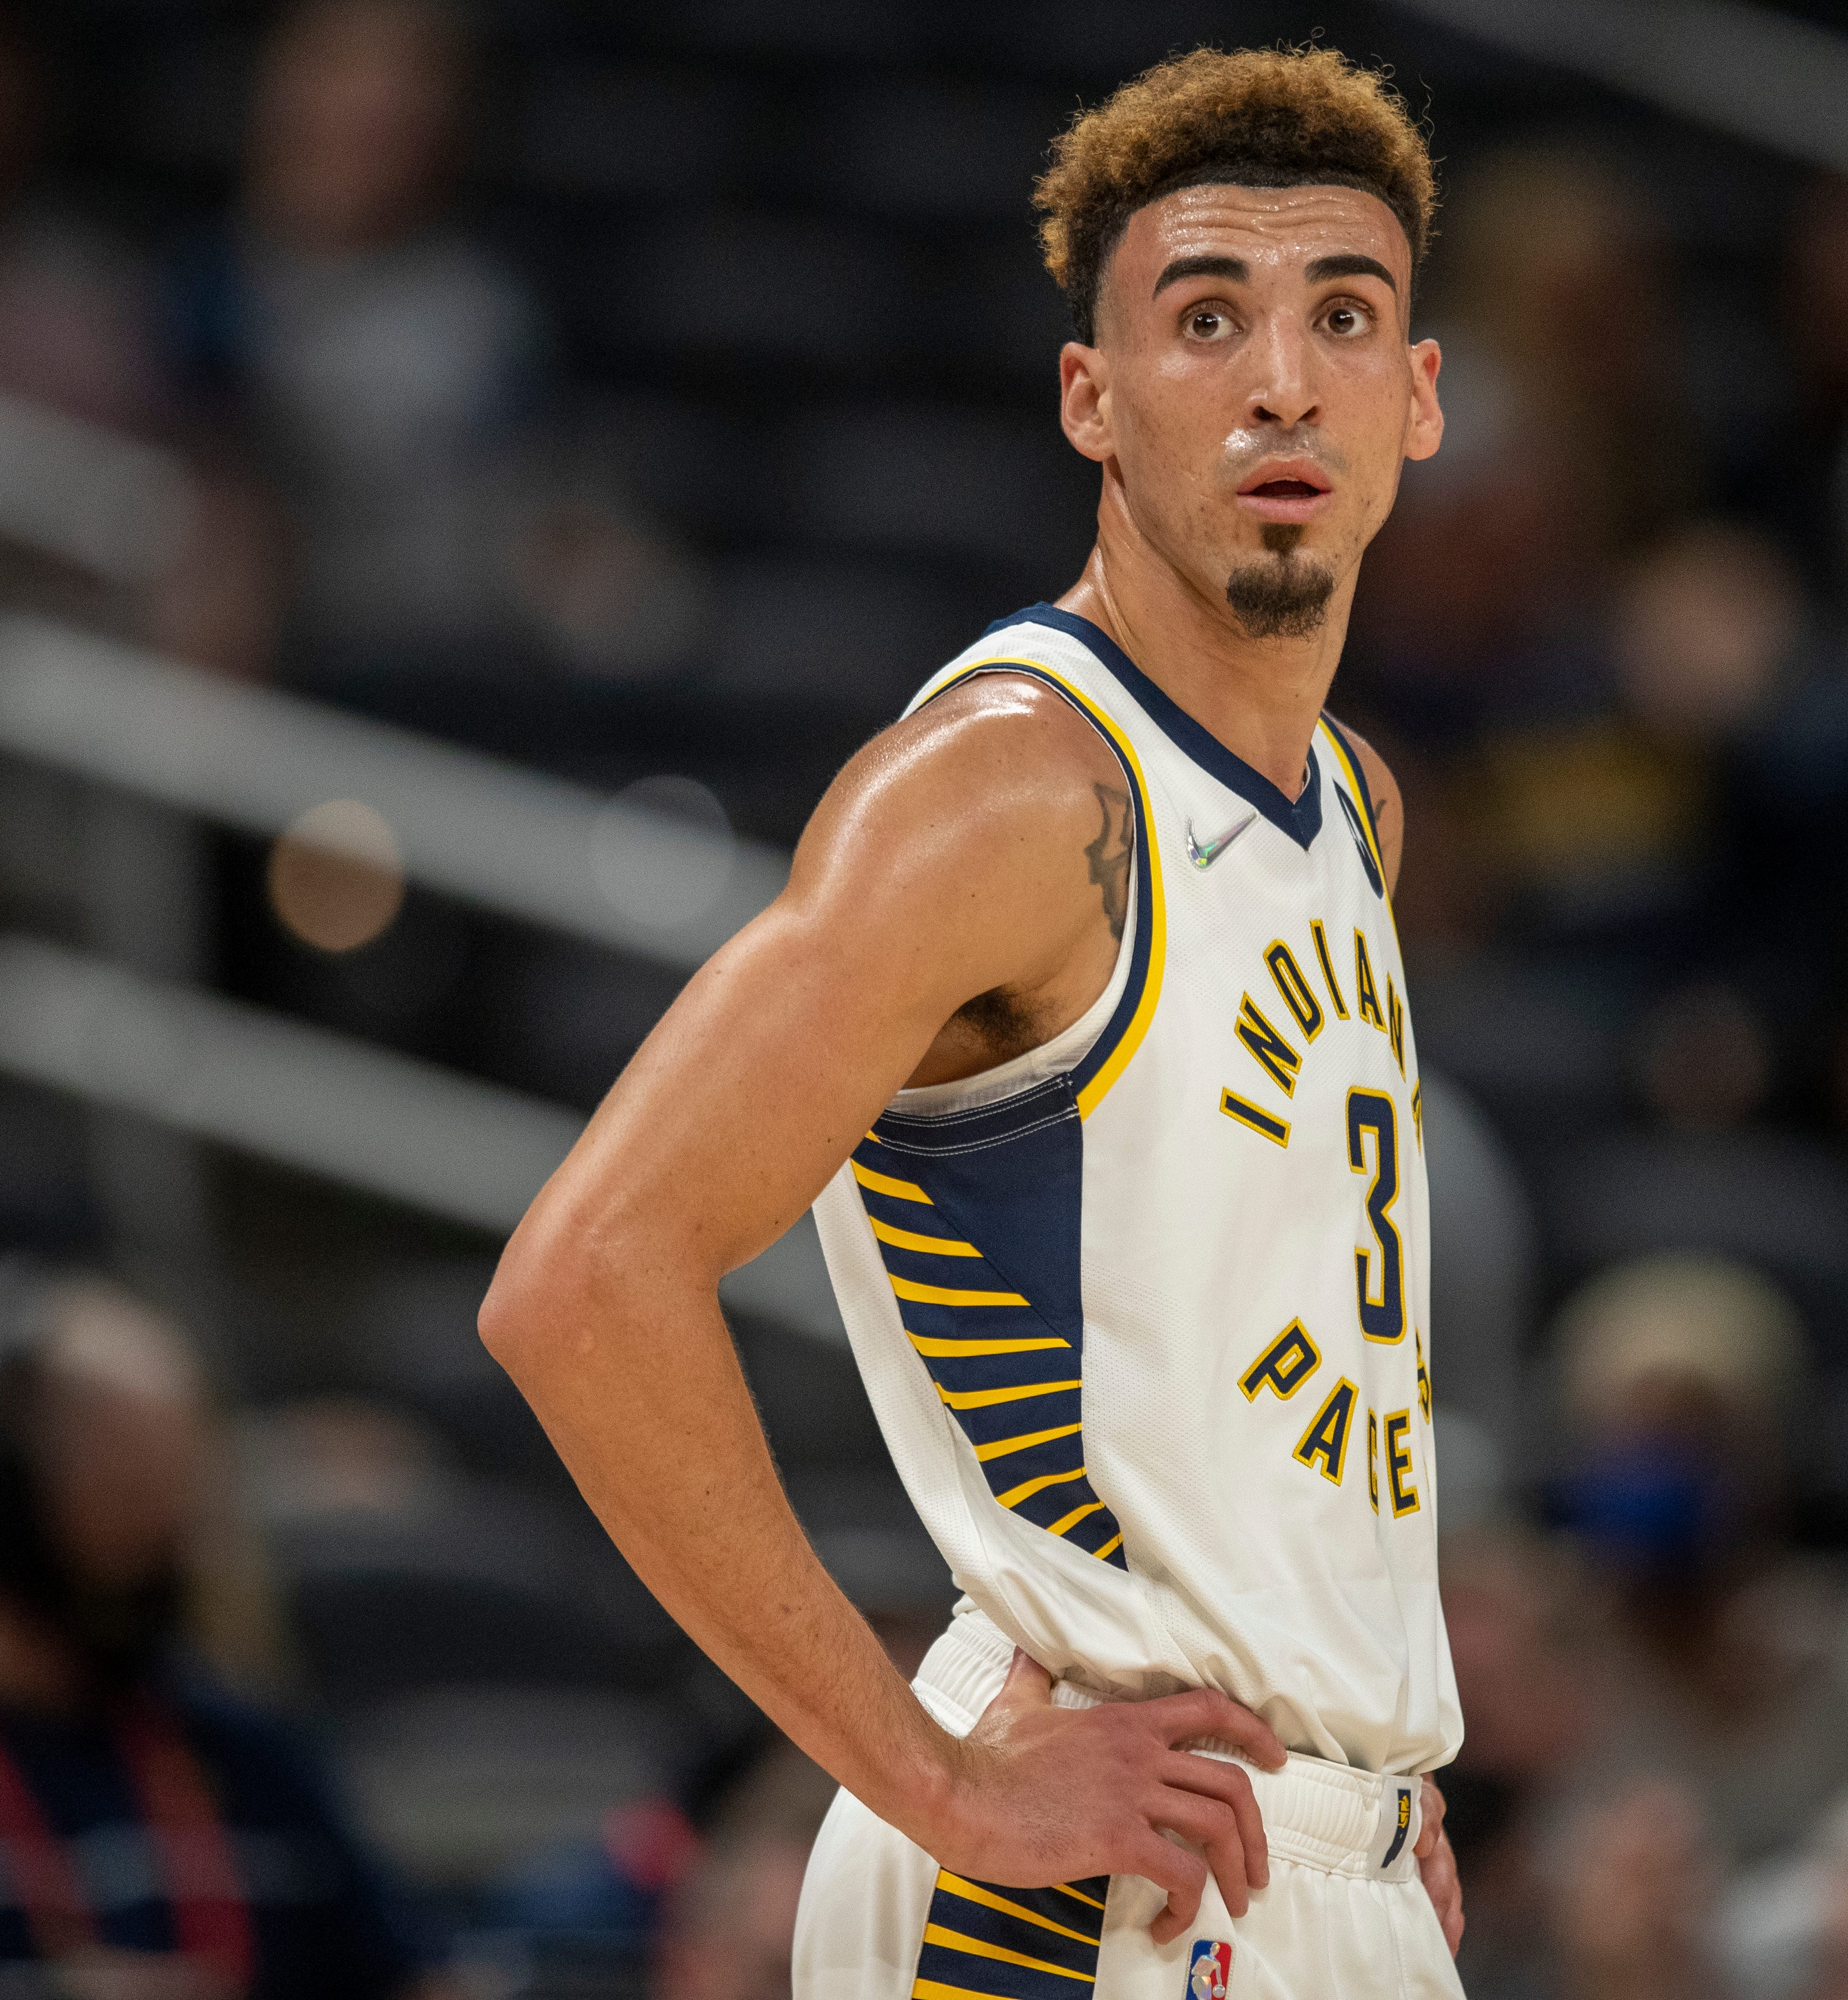 From D.R. to prep school and junior college, Pacers rookie Chris Duarte traveled unusual path to NBA